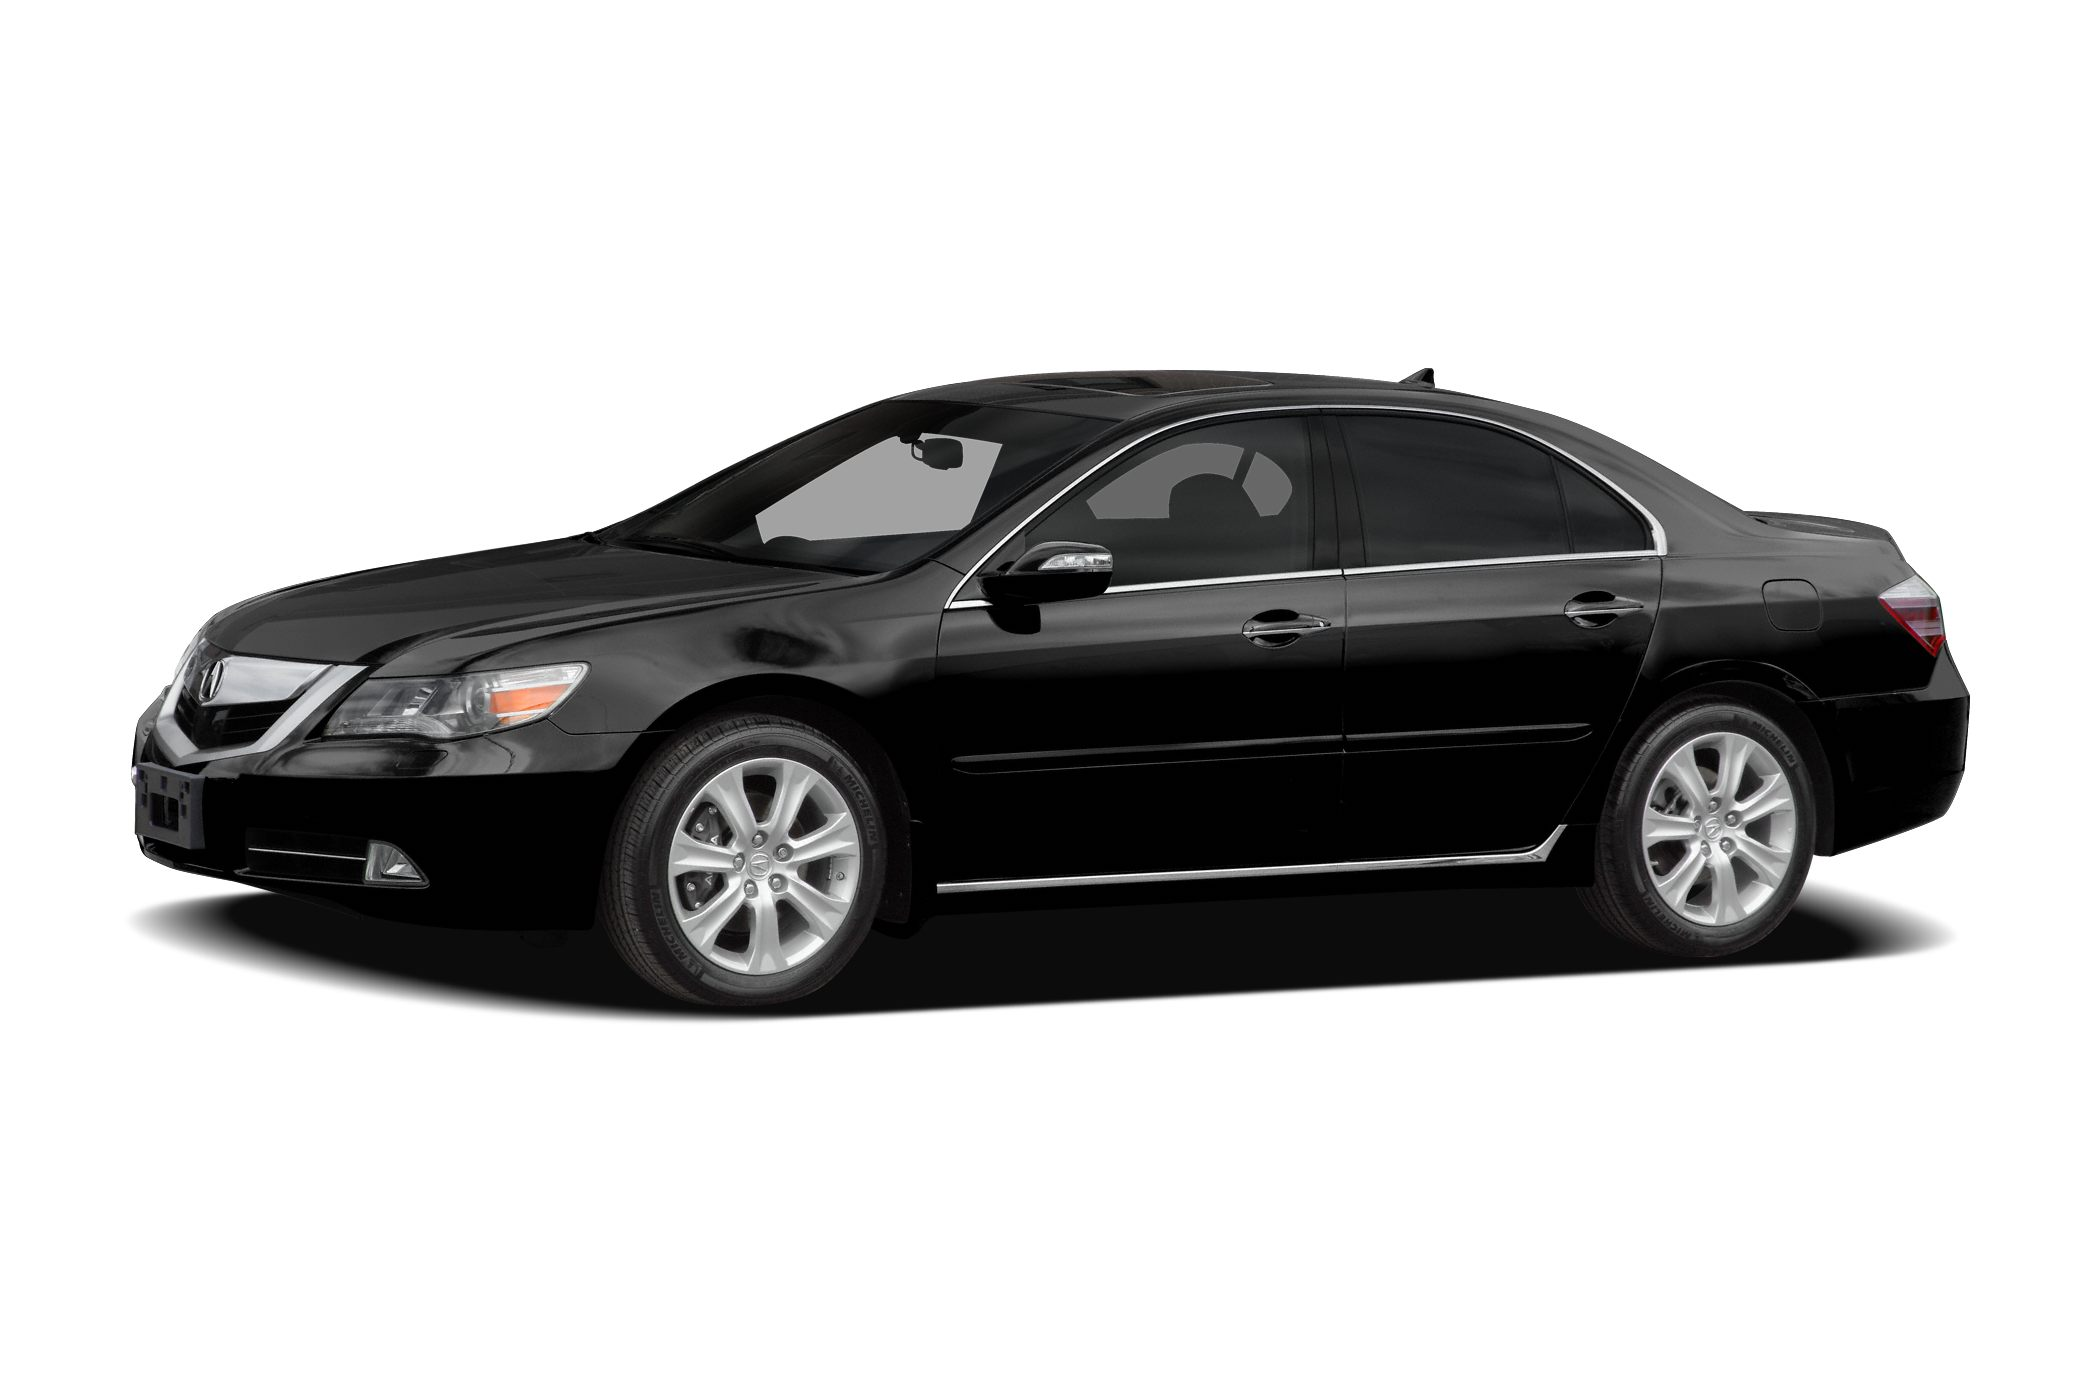 2010 Acura RL